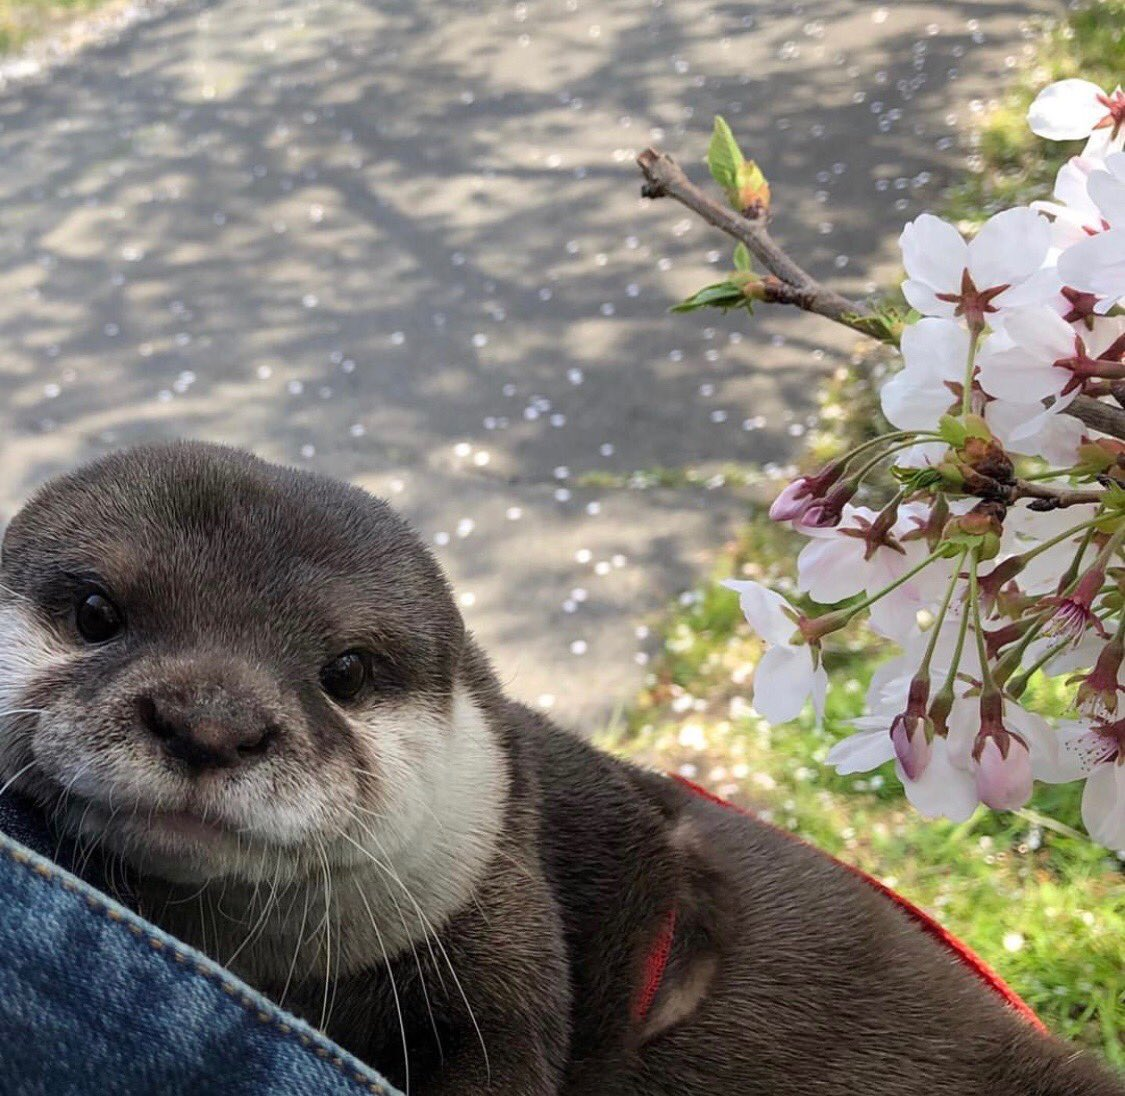 everyone have a beautiful day here's an otter